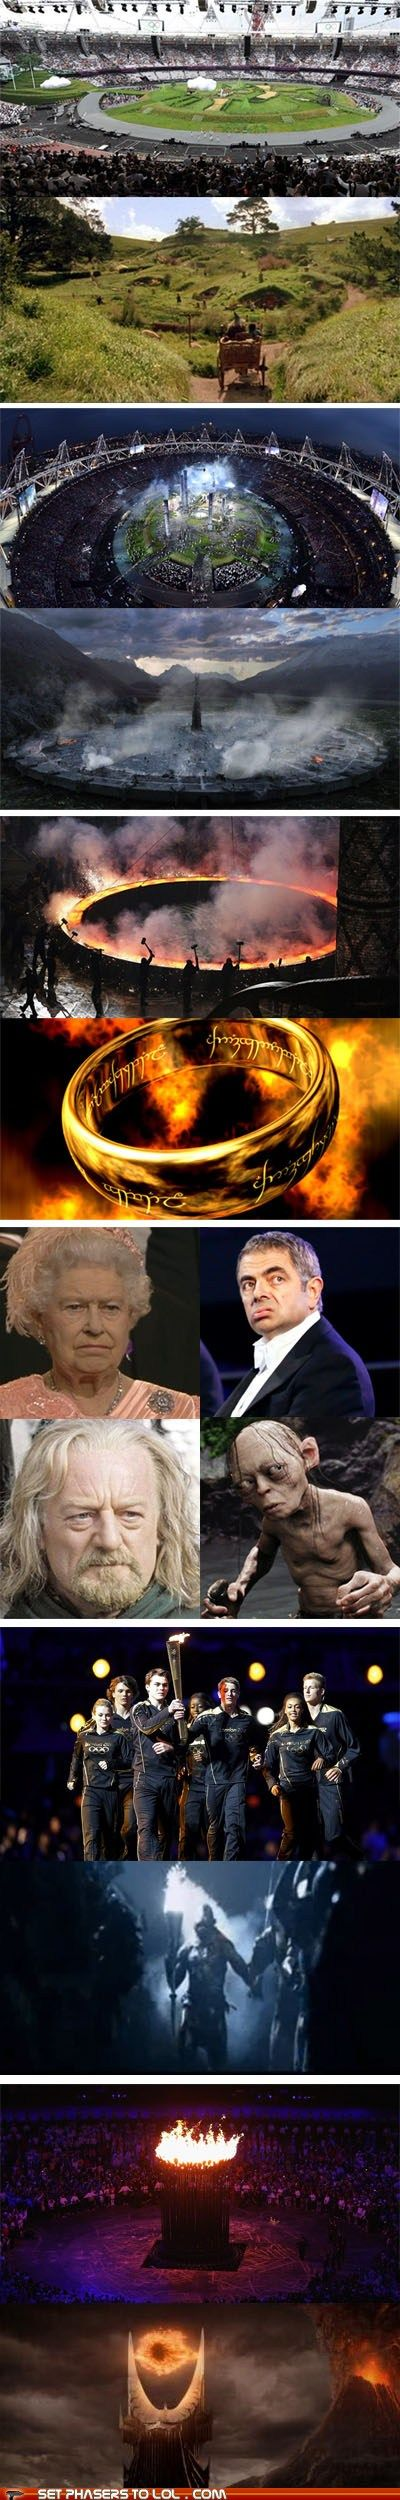 The whole London Opening Ceremonies honored J.R.R. Tolkien :)